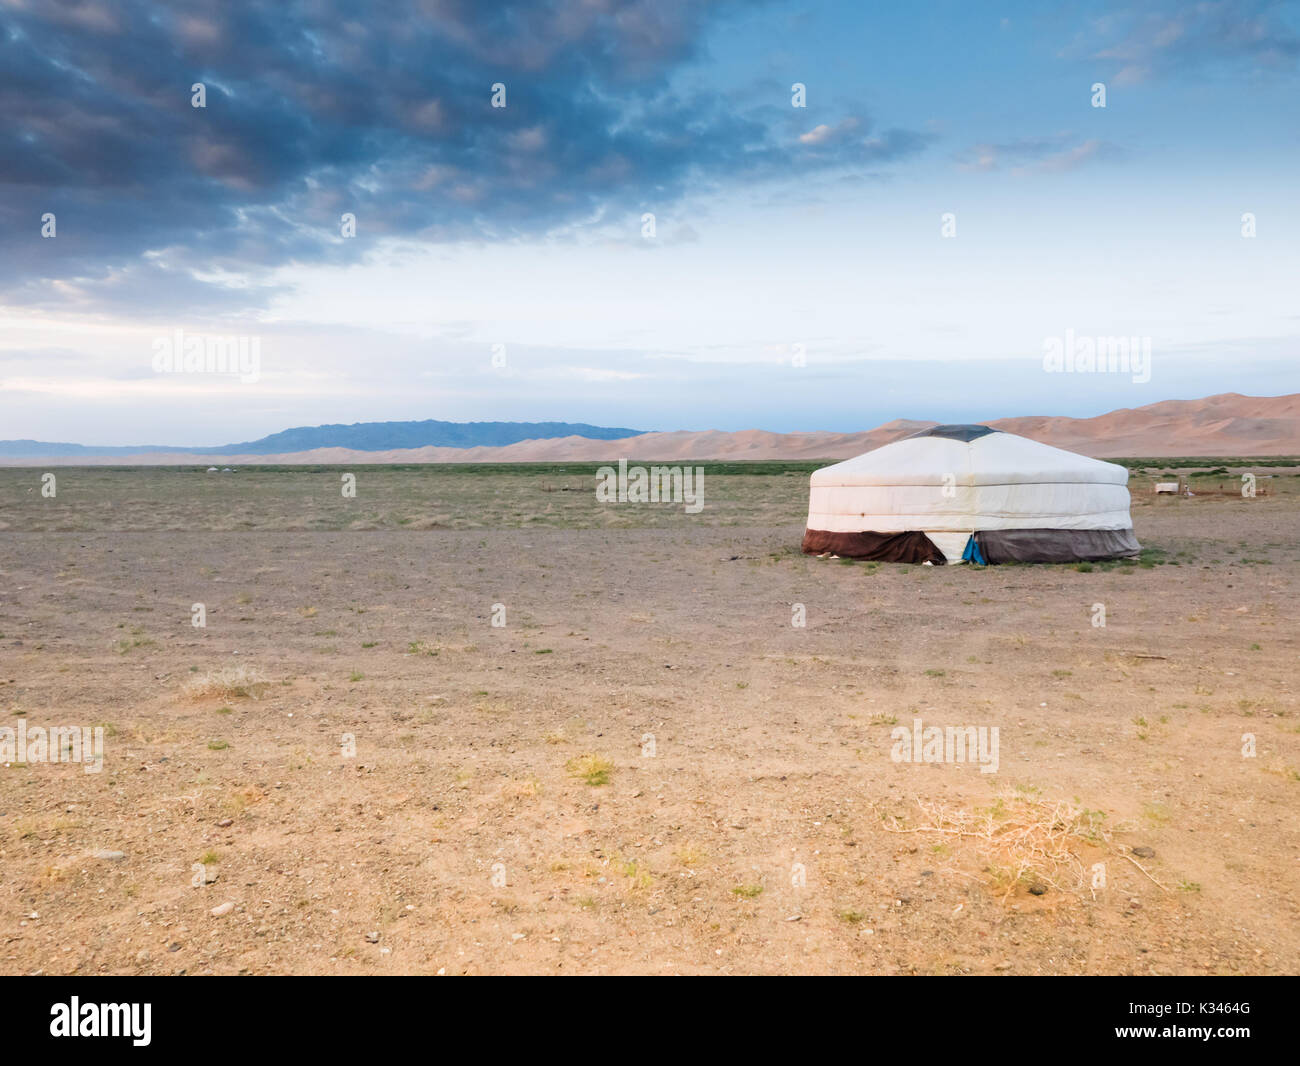 Mongolia Yurt in the Gobi Desert - Stock Image